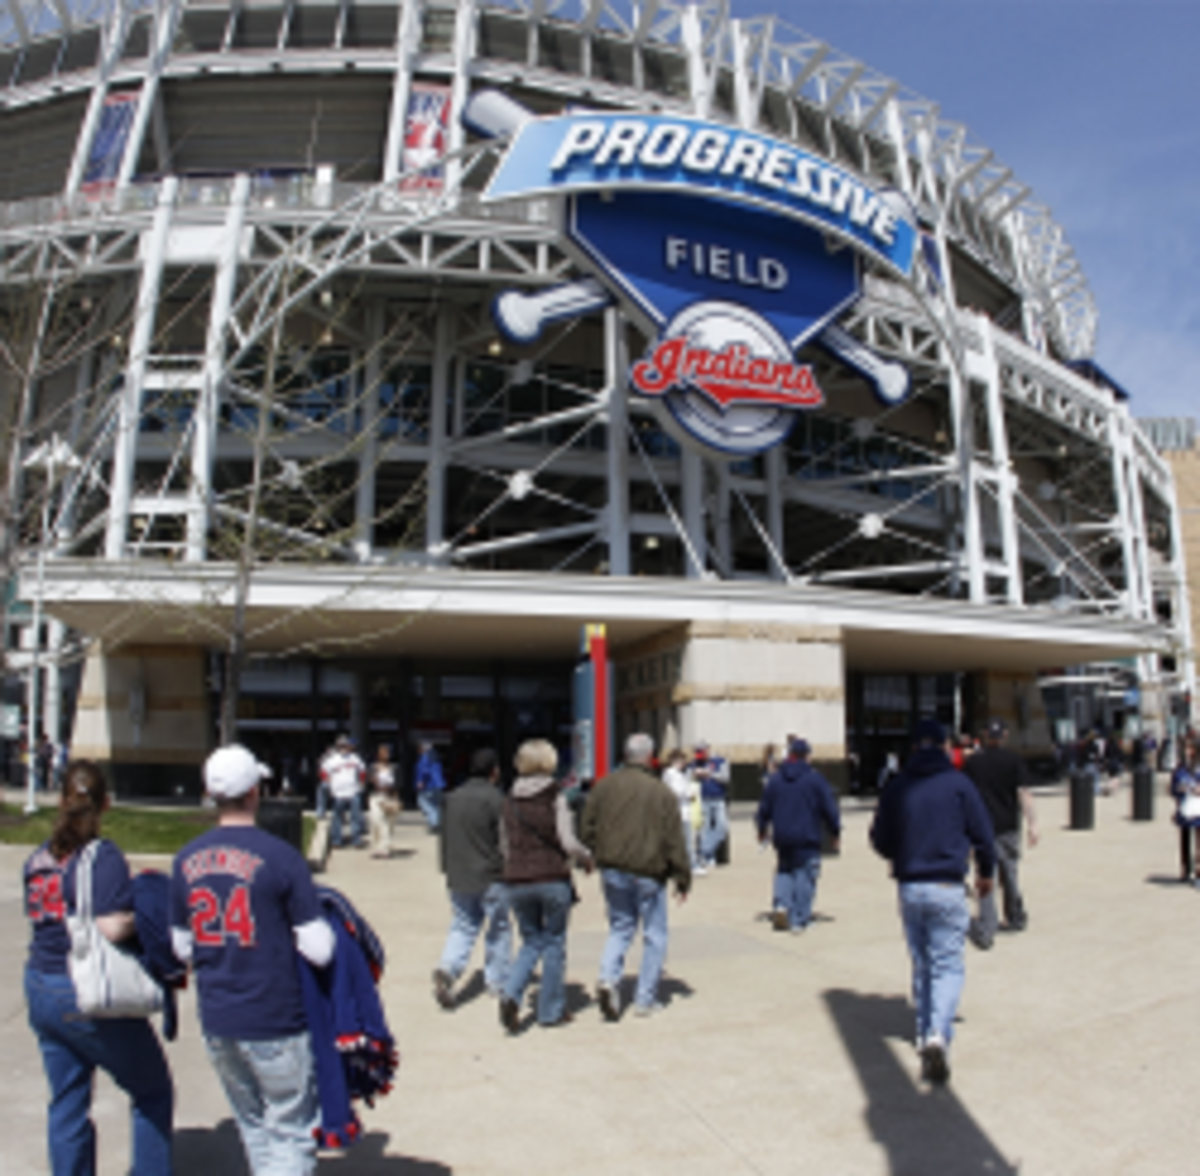 The Indians are slashing concession prices at Progressive Field to encourage fans to attend more games. (Gregory Shamus/Getty Images)